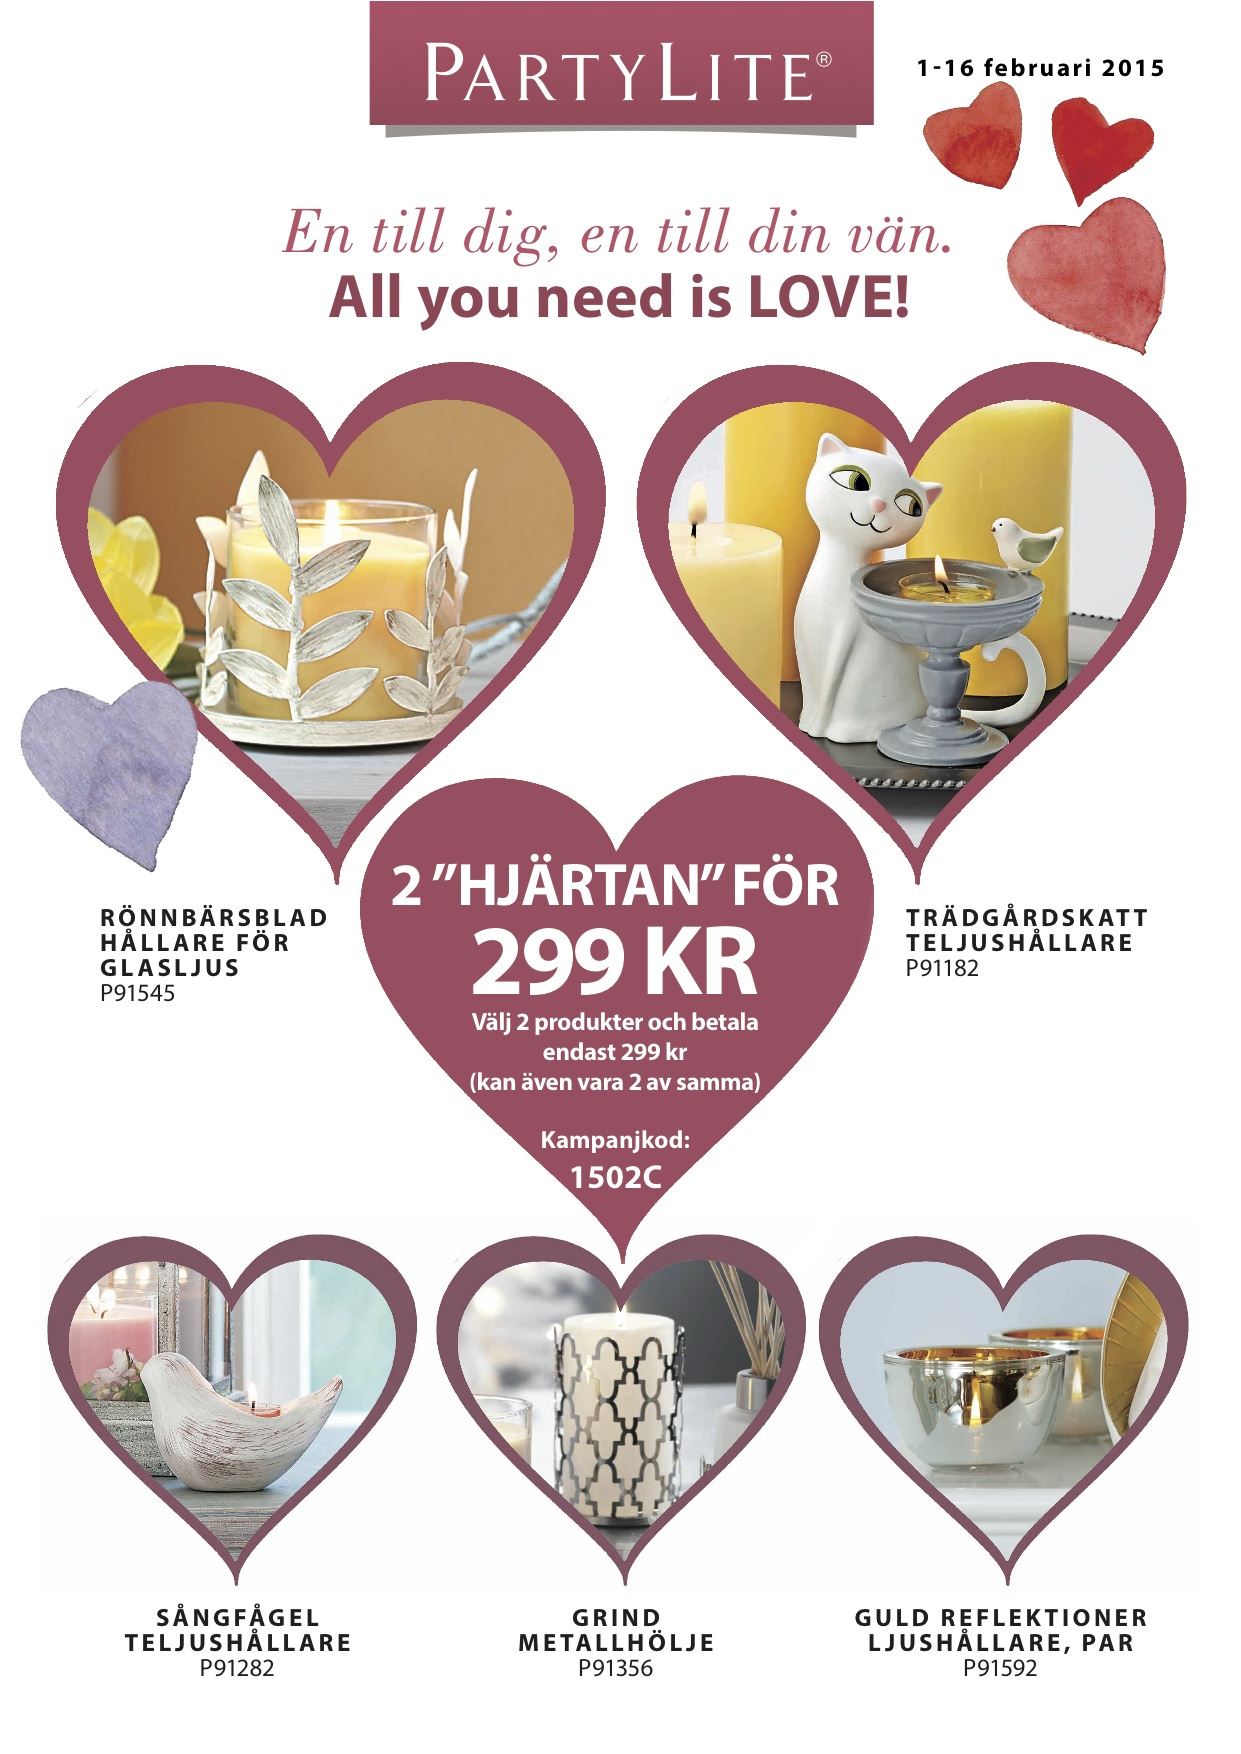 PartyLite 2015 FEBRUARY 1-16